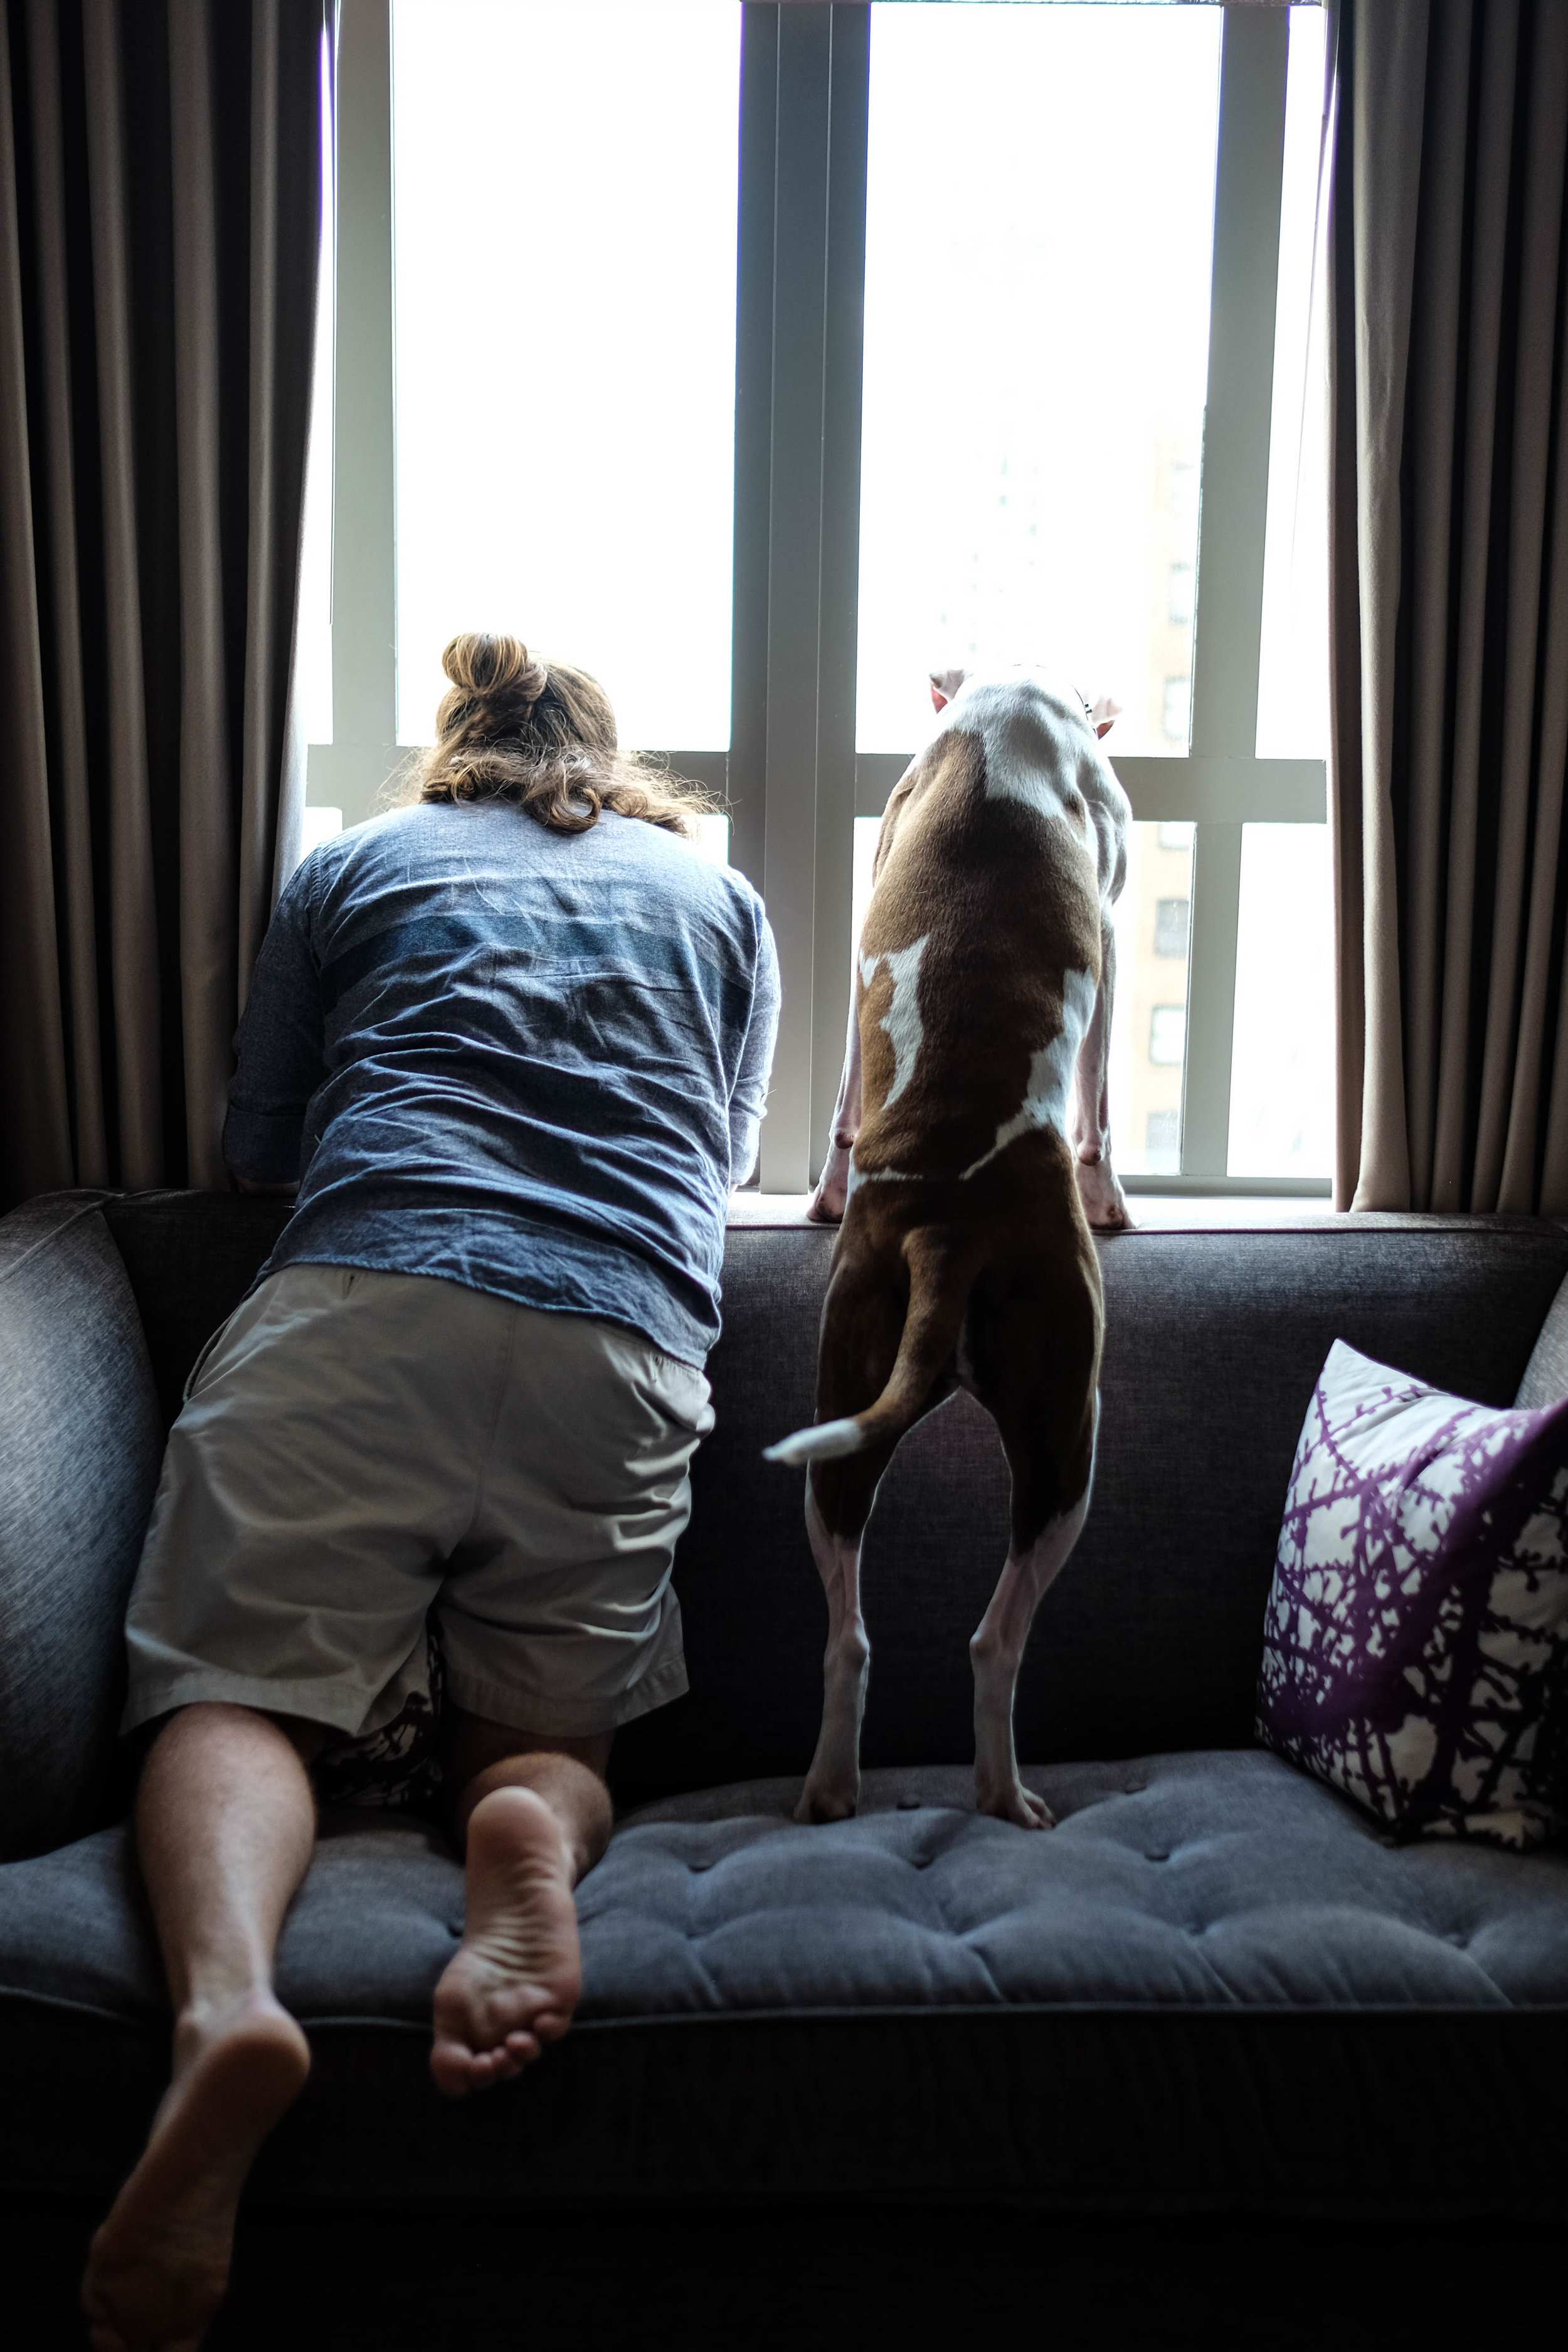 A Particularly Puppy Friendly Hotel -